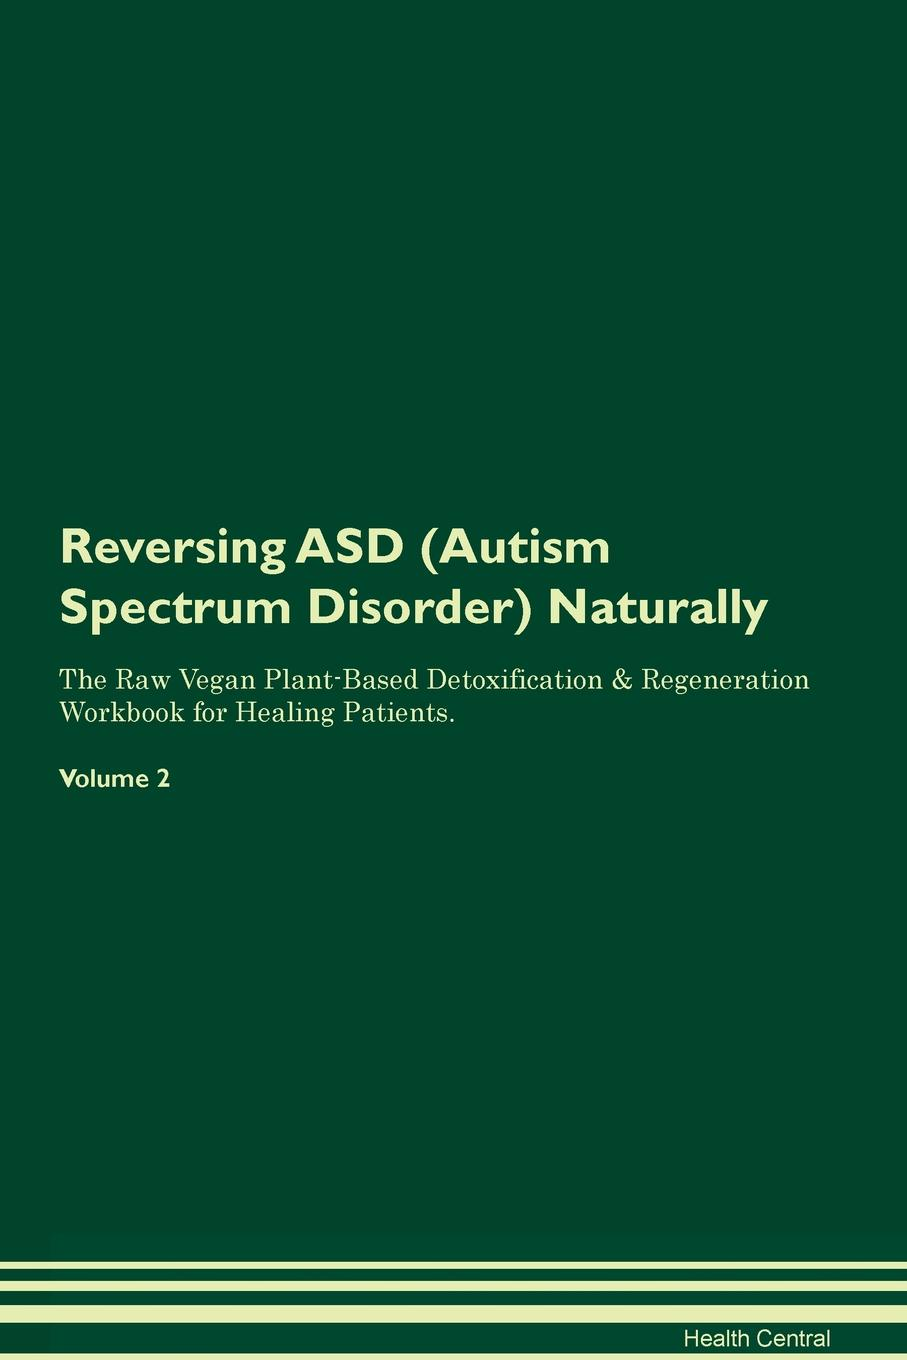 Reversing ASD (Autism Spectrum Disorder) Naturally The Raw Vegan Plant-Based Detoxification & Regeneration Workbook for Healing Patients. Volume 2